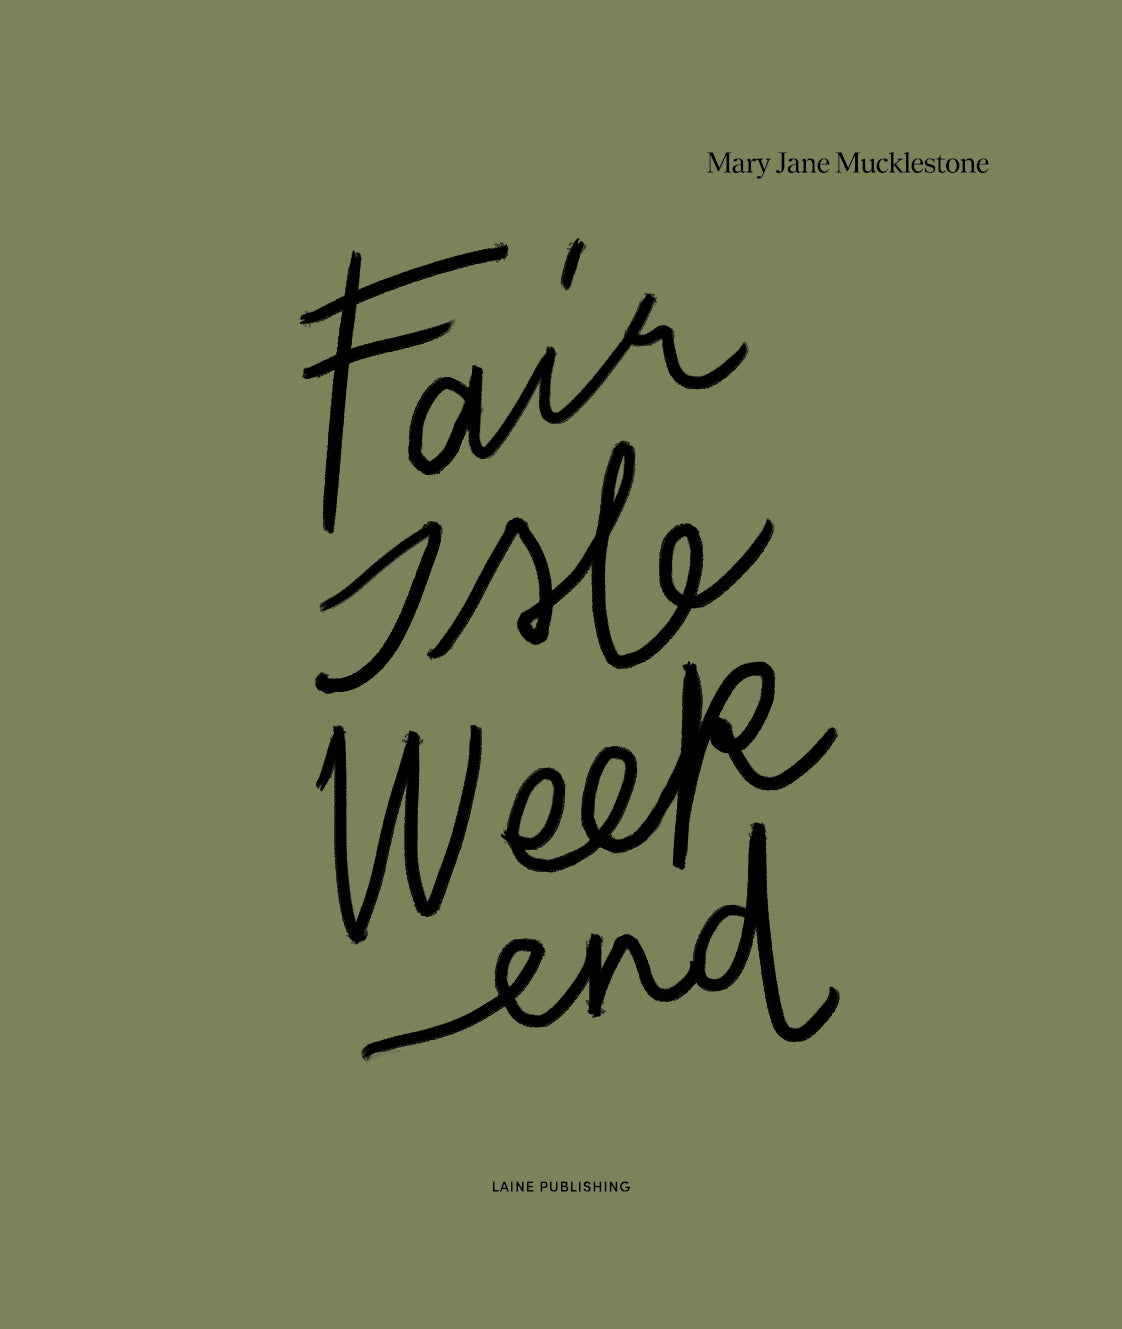 Mary Jane Mucklestone - Fair Isle Weekend